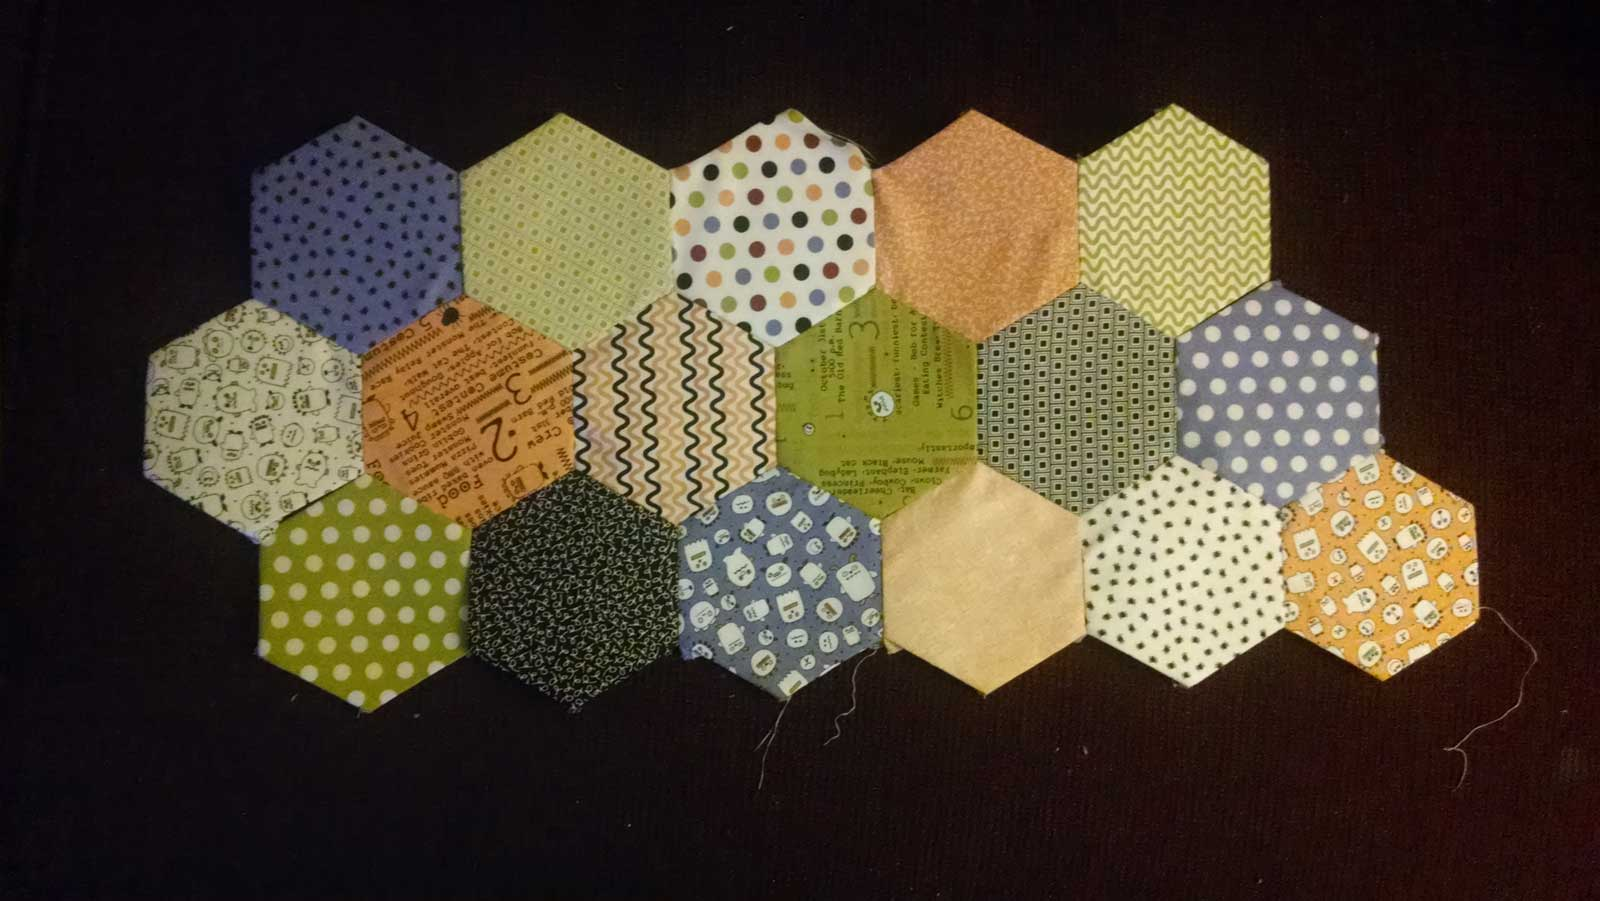 17 completed hexigons